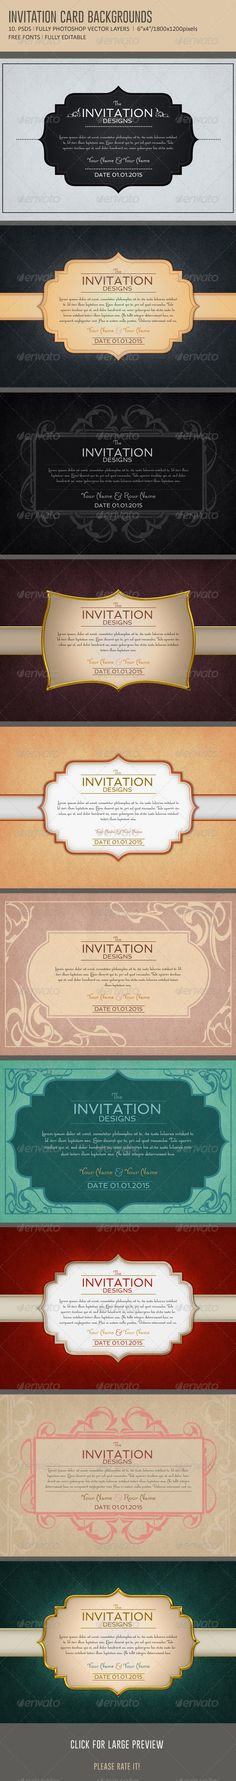 Invitation card backgrounds col2 font logo and fonts invitation card backgrounds graphicriver 10 unique invitation card backgrounds 6x4 300dpi fully stopboris Gallery